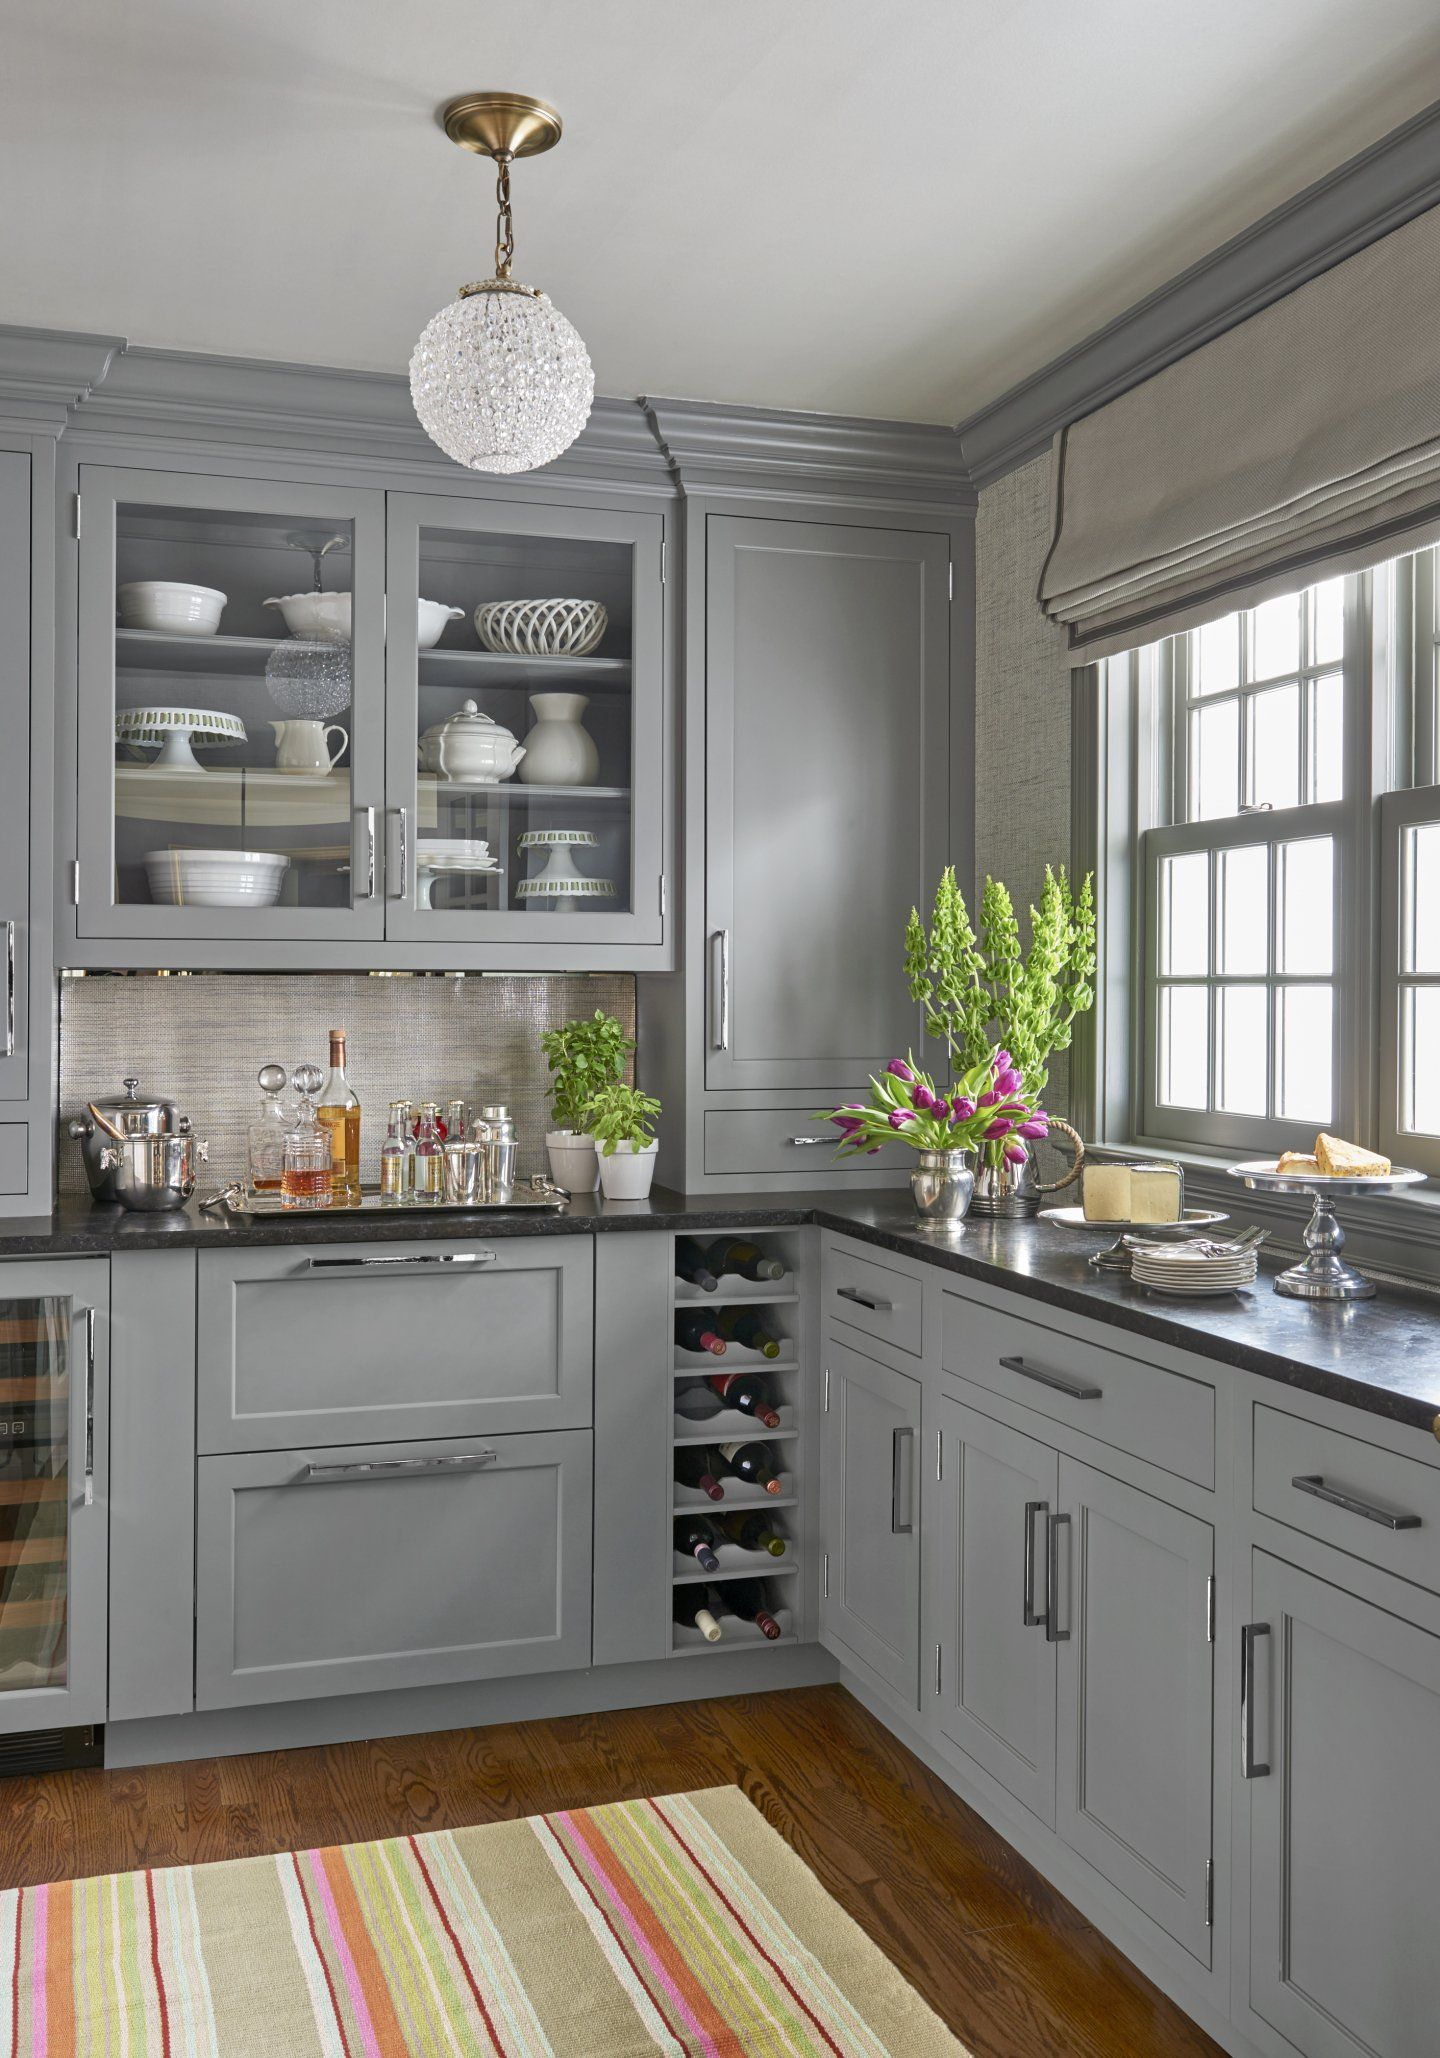 A First Class Butler S Pantry Boasts Leatherized Black Granite Countertops Silvery Grasscloth Wallpa Grey Kitchen Cabinets Kitchen Design Kitchen Renovation